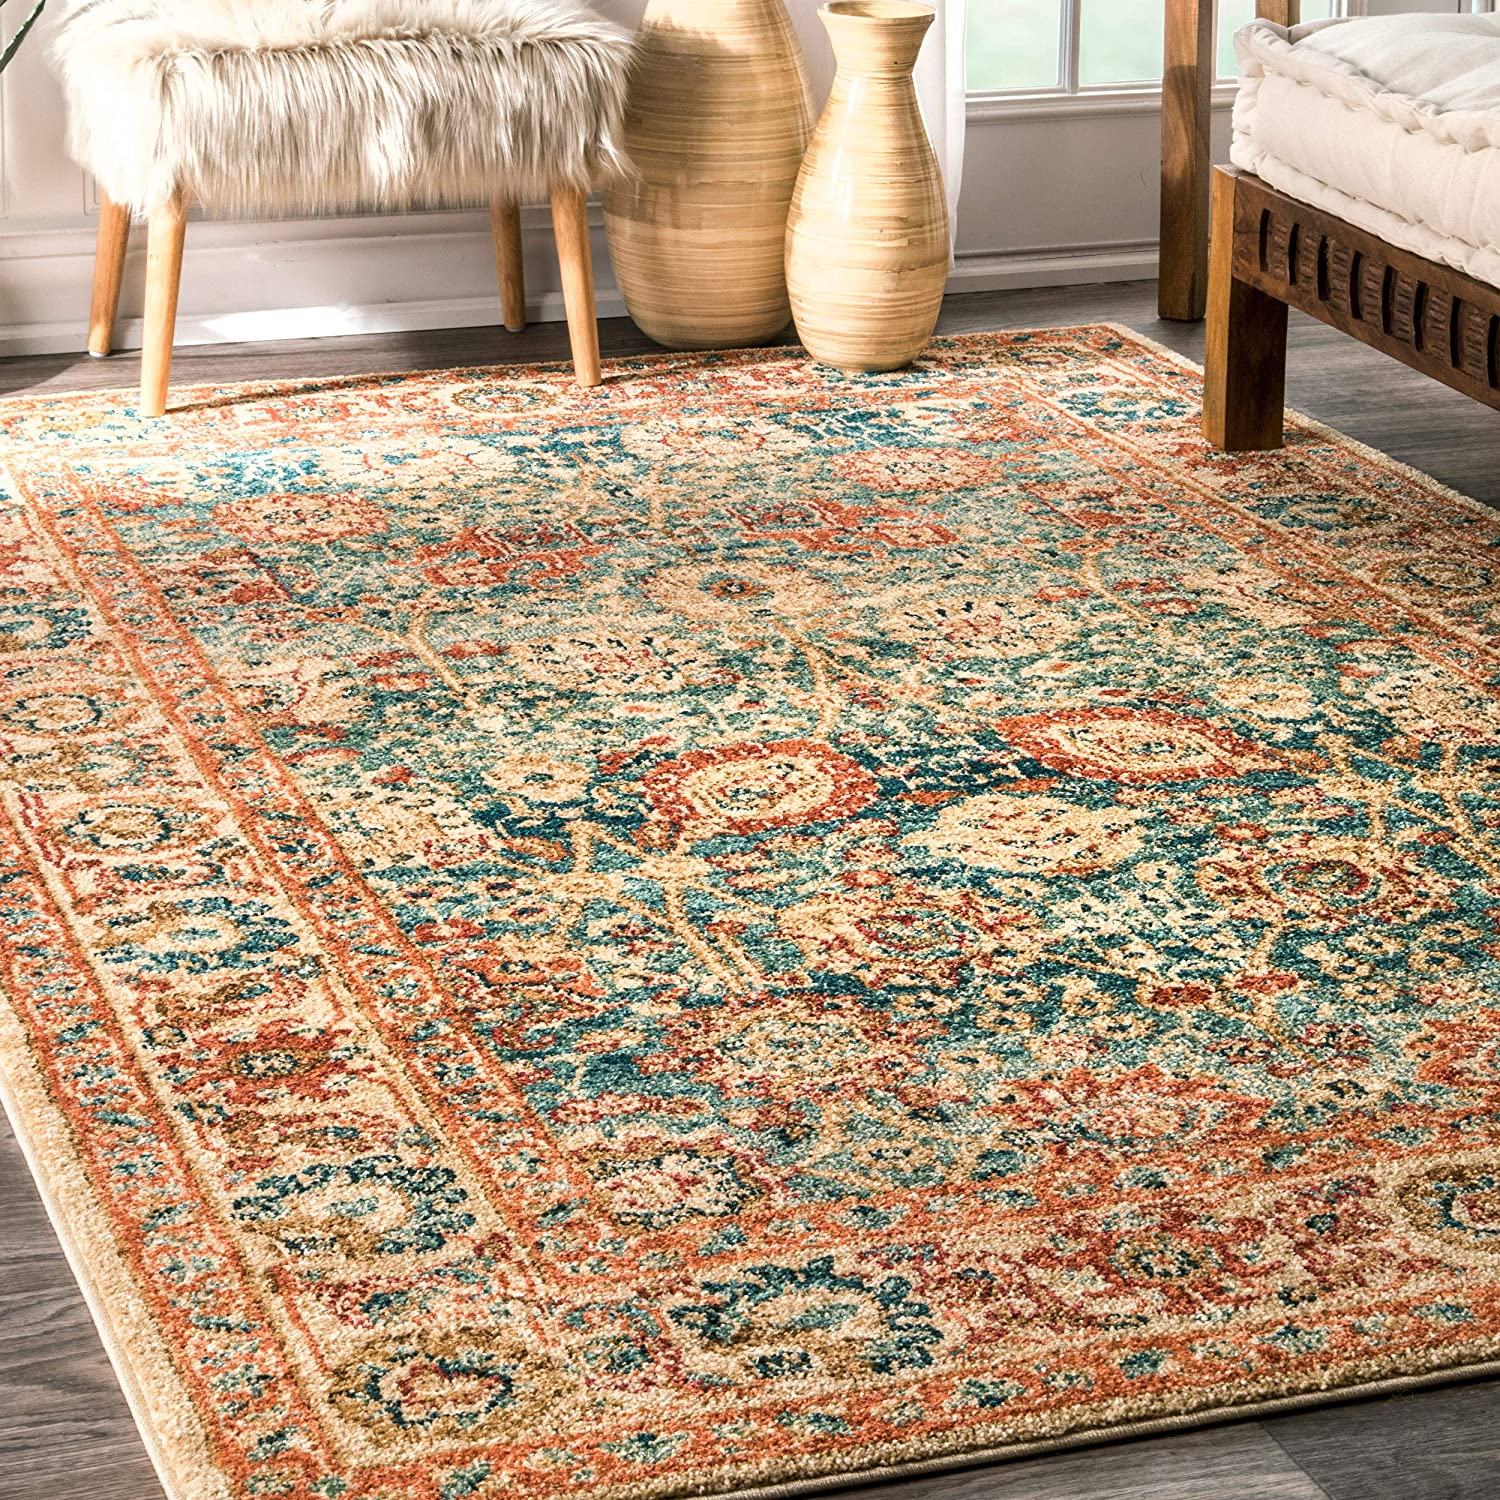 nuLOOM Max 45% OFF Lorna Persian Floral Area Beige 4' Fort Worth Mall x 6' Rug